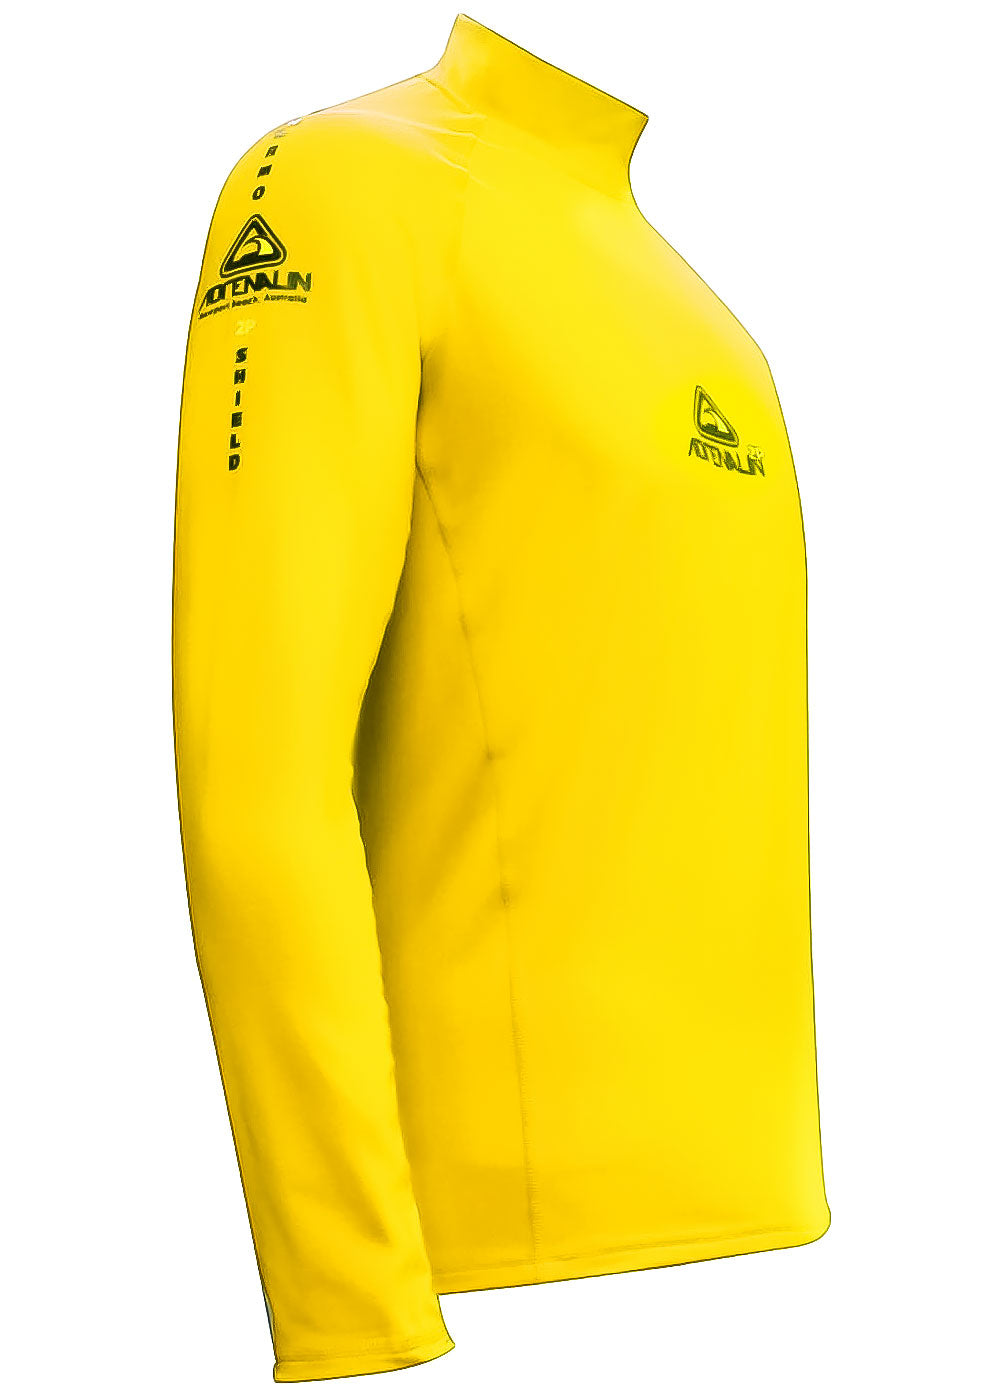 Adrenalin 2P Thermal Long Sleeve Rash Guard yellow buy online rashie